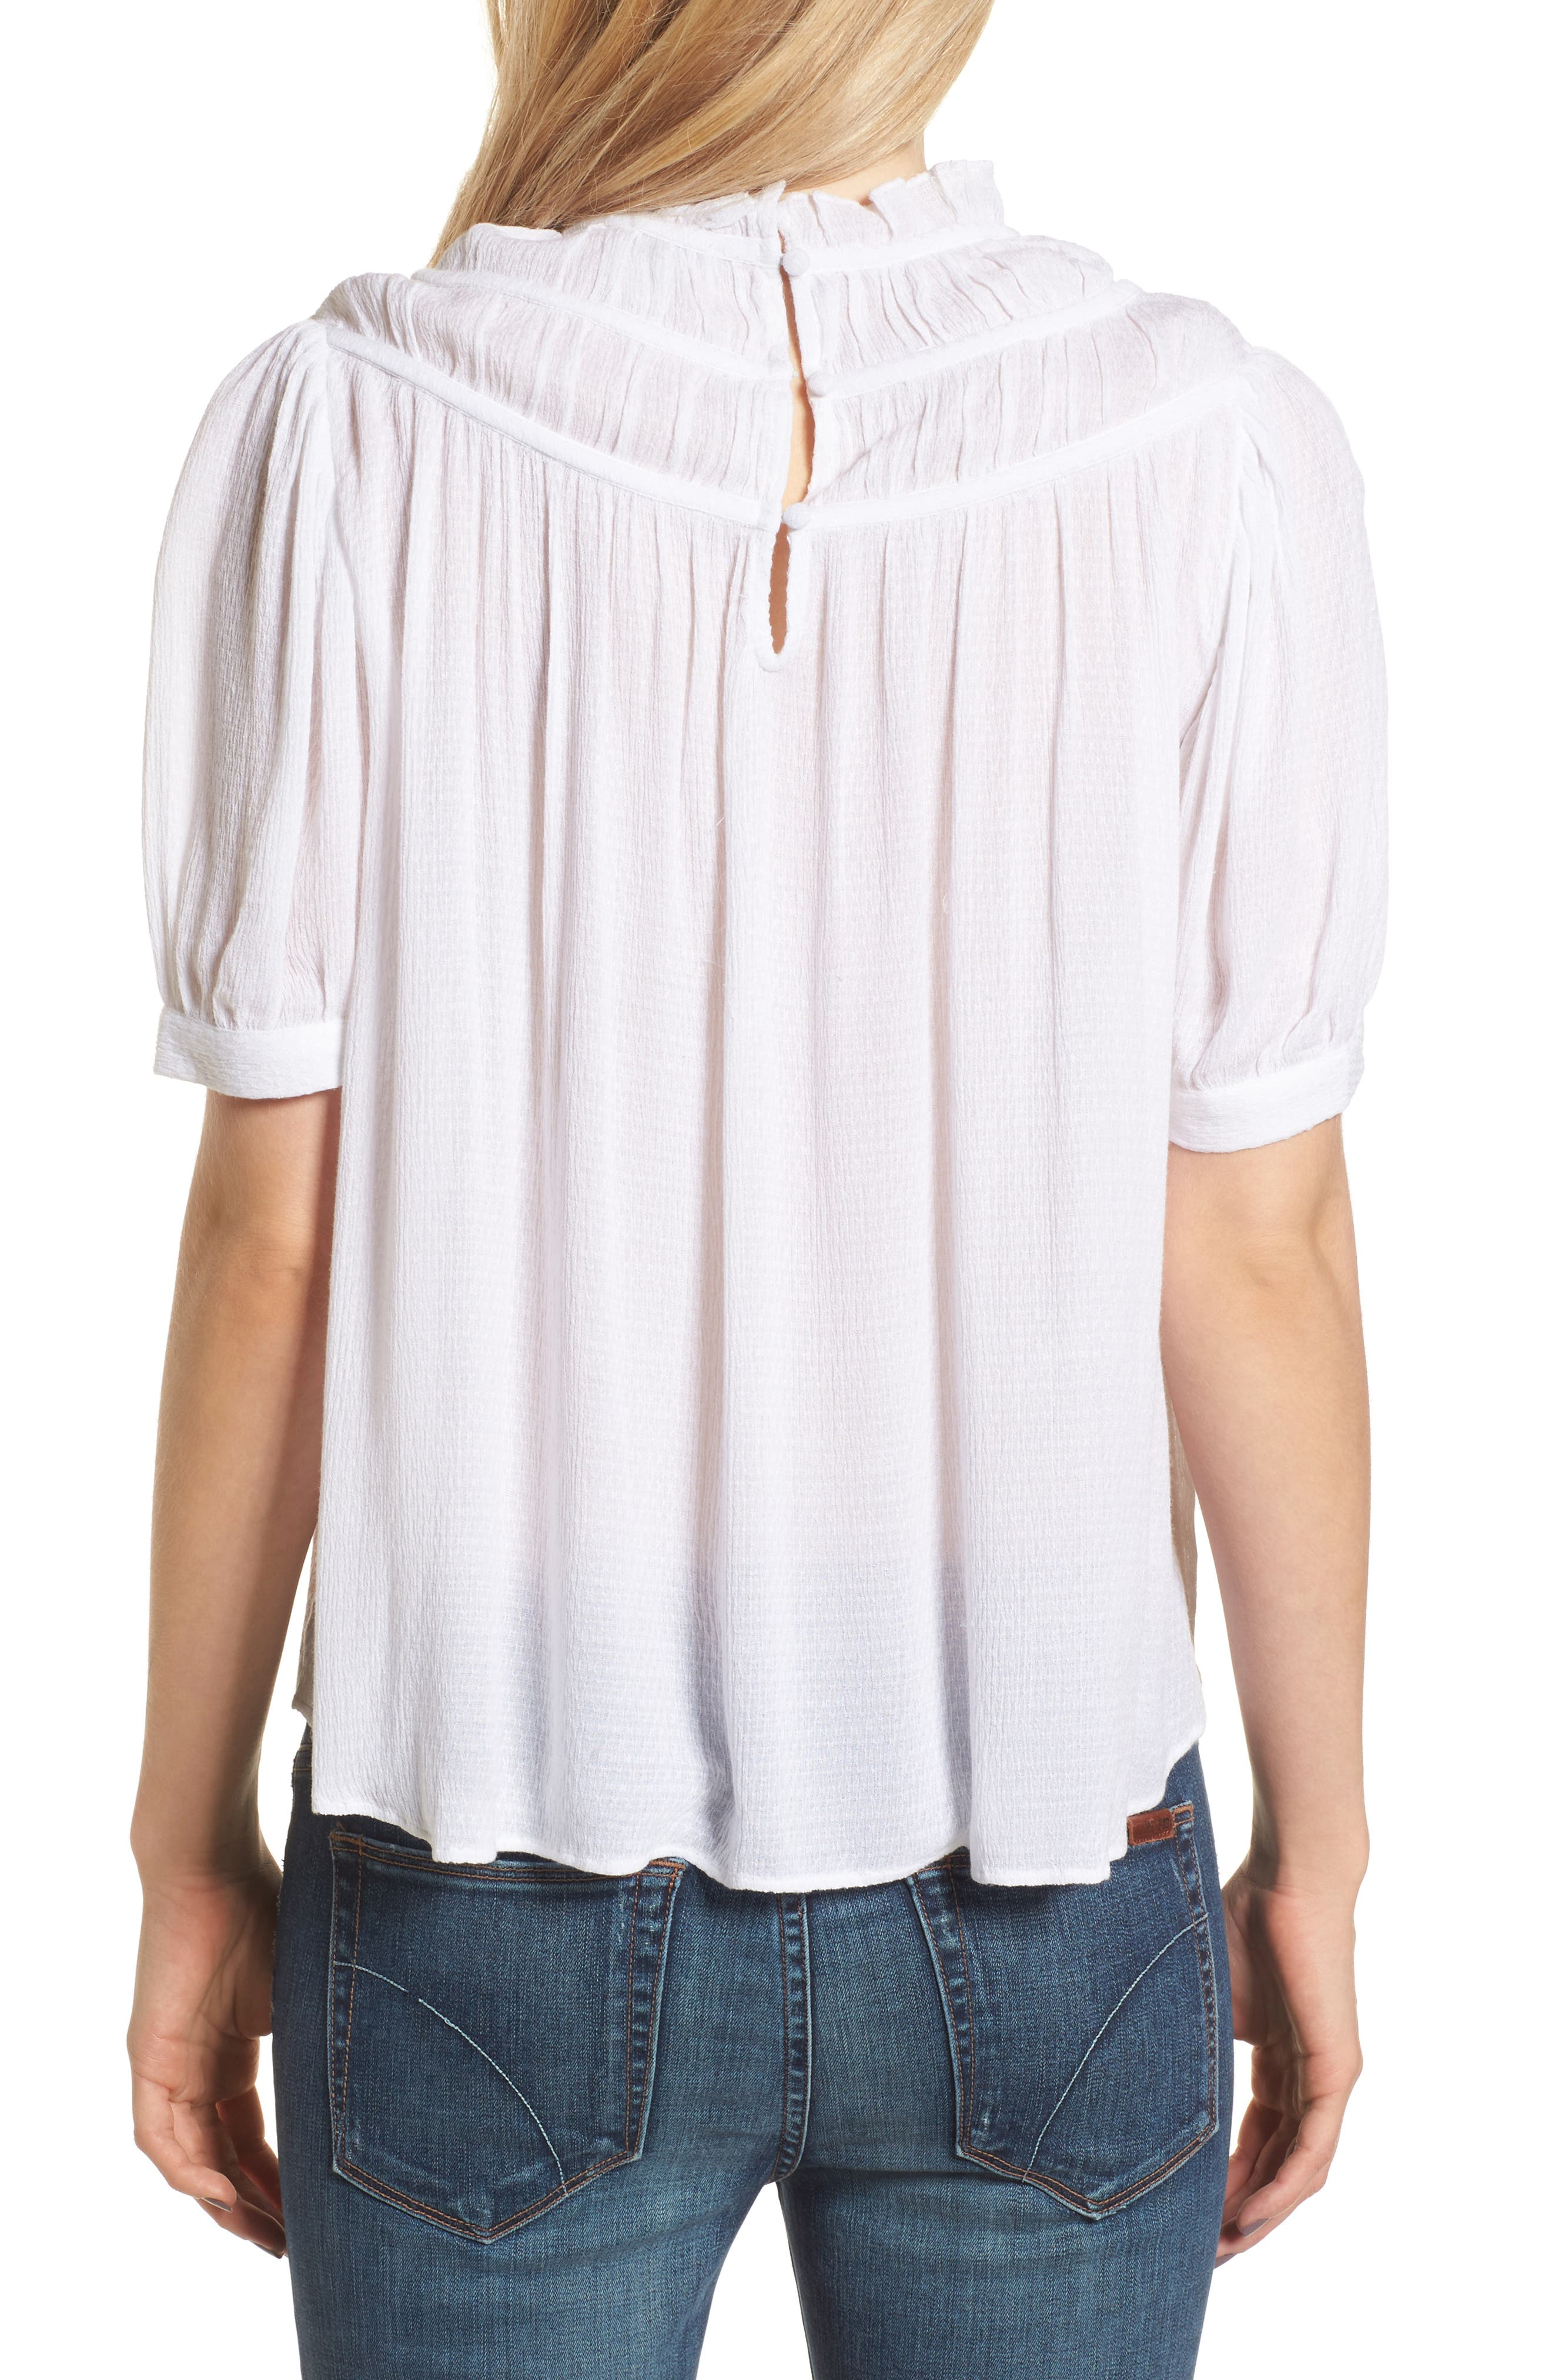 Ruched Puff Sleeve Top,                             Alternate thumbnail 2, color,                             100